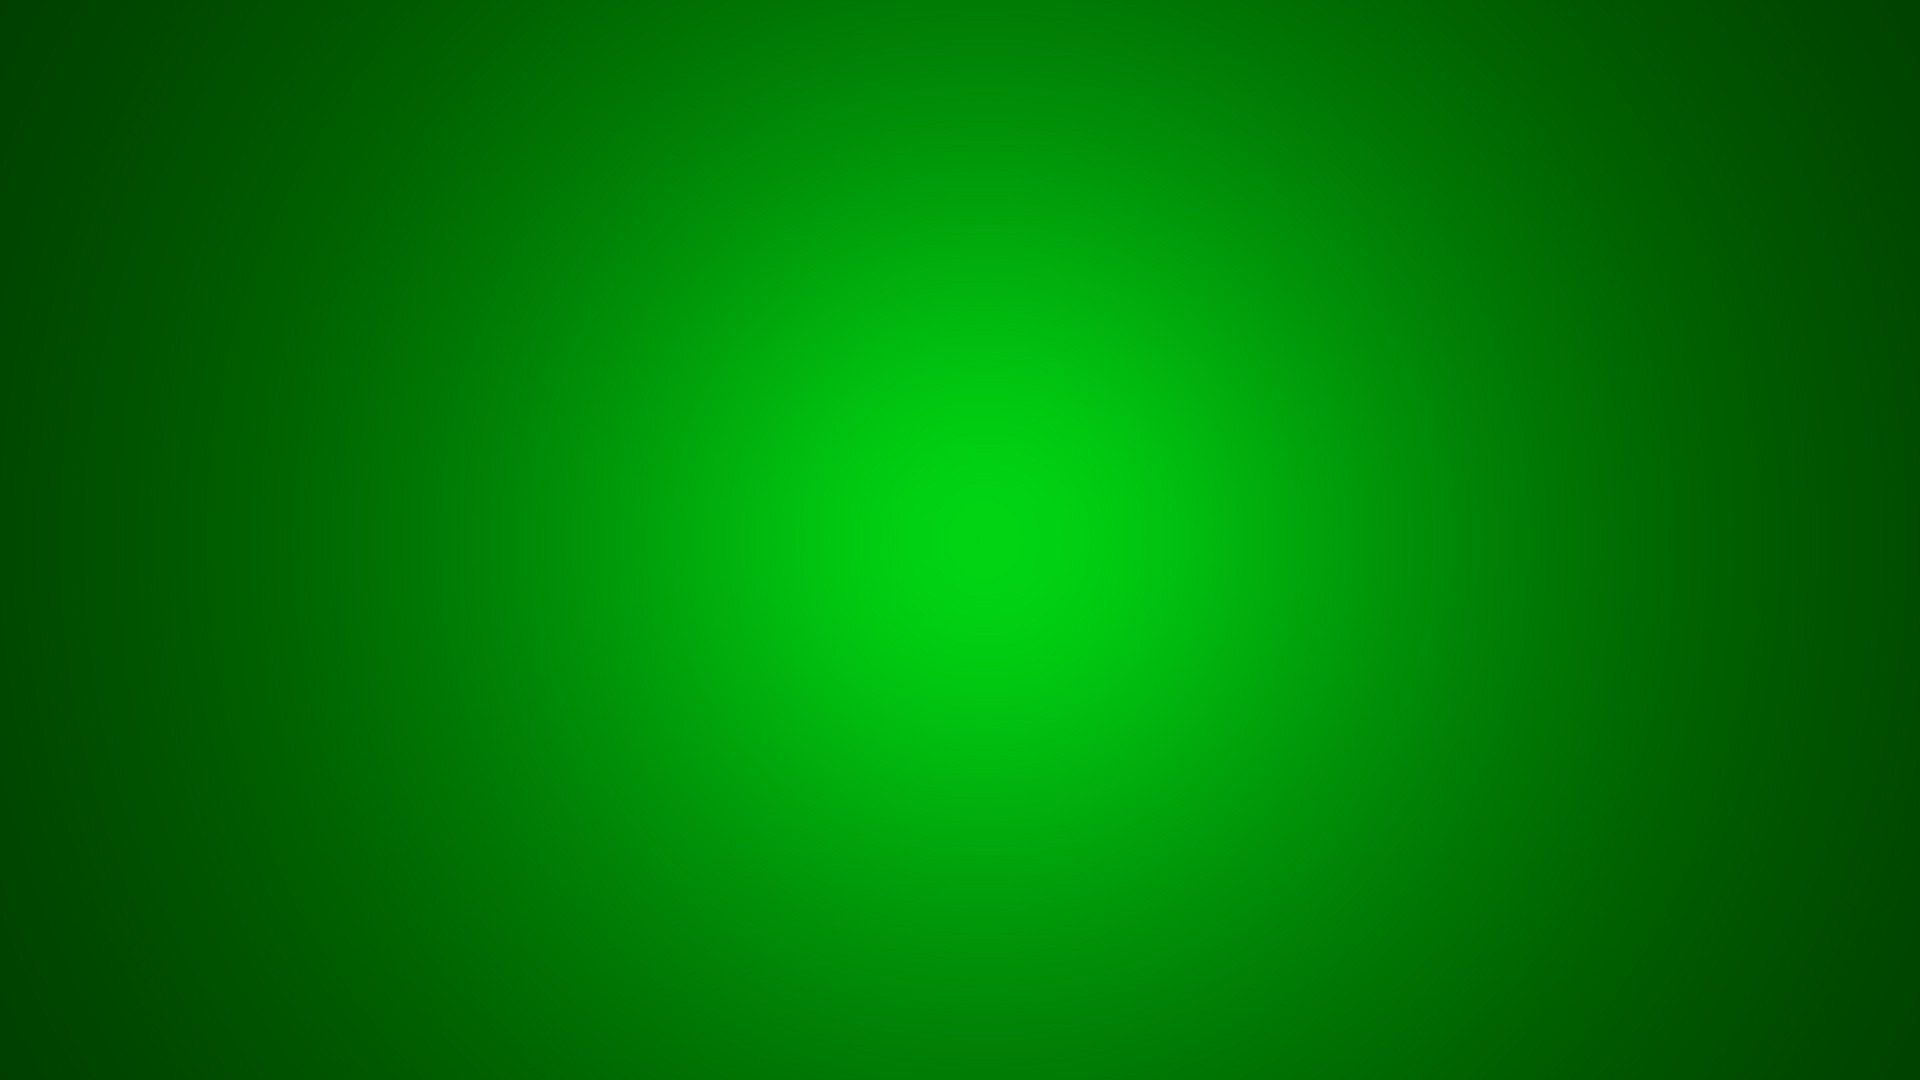 45 HD Green WallpapersBackgrounds For Download 1920x1080